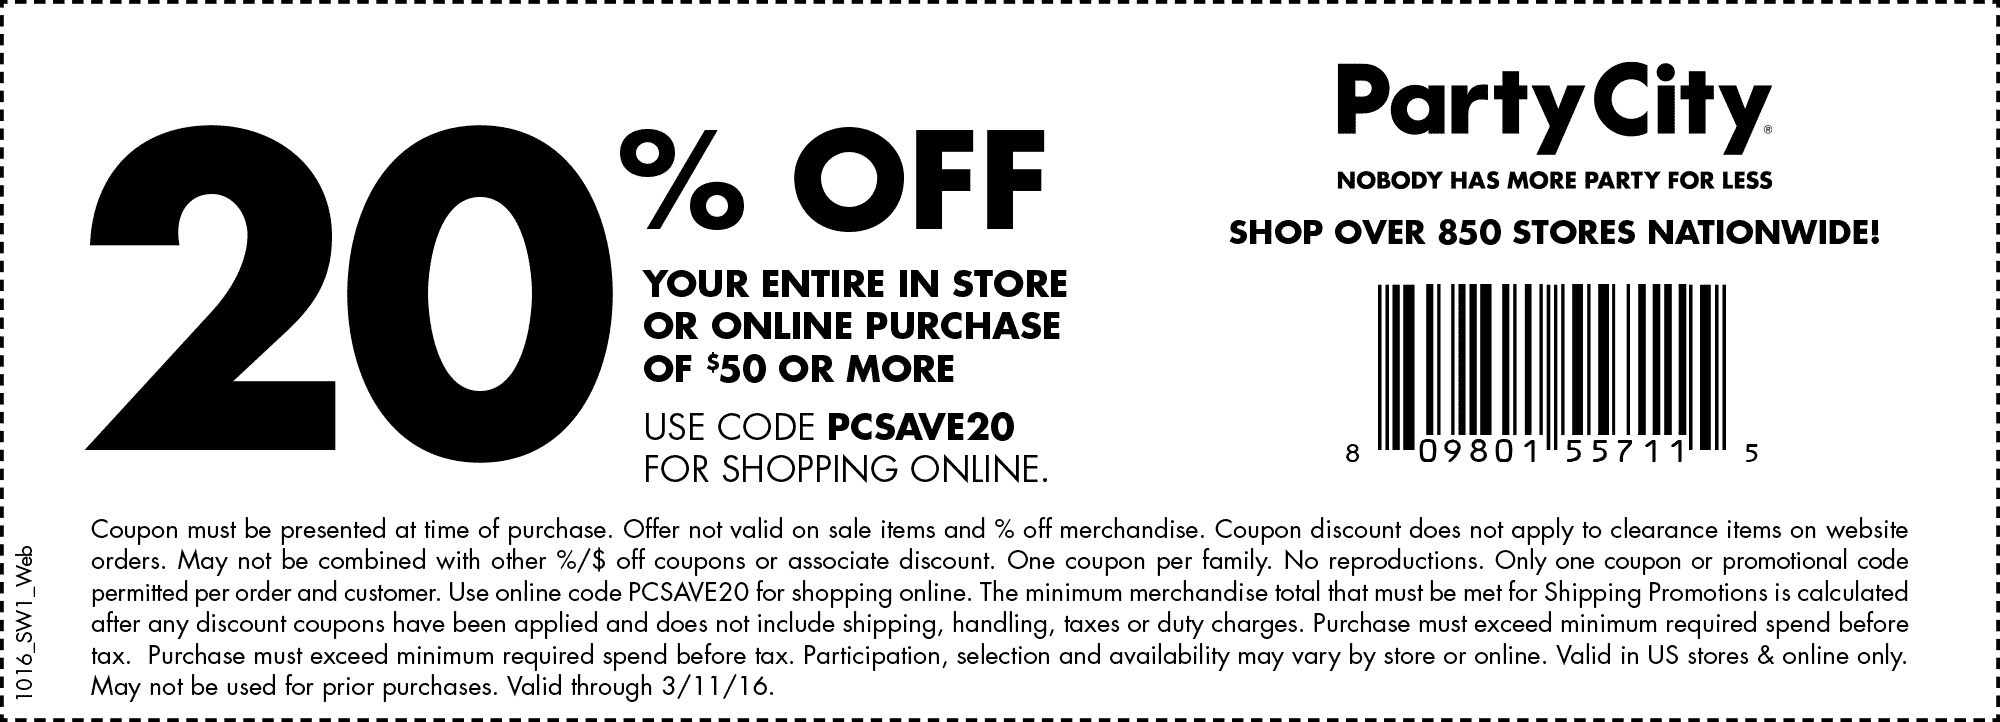 Second city coupon code